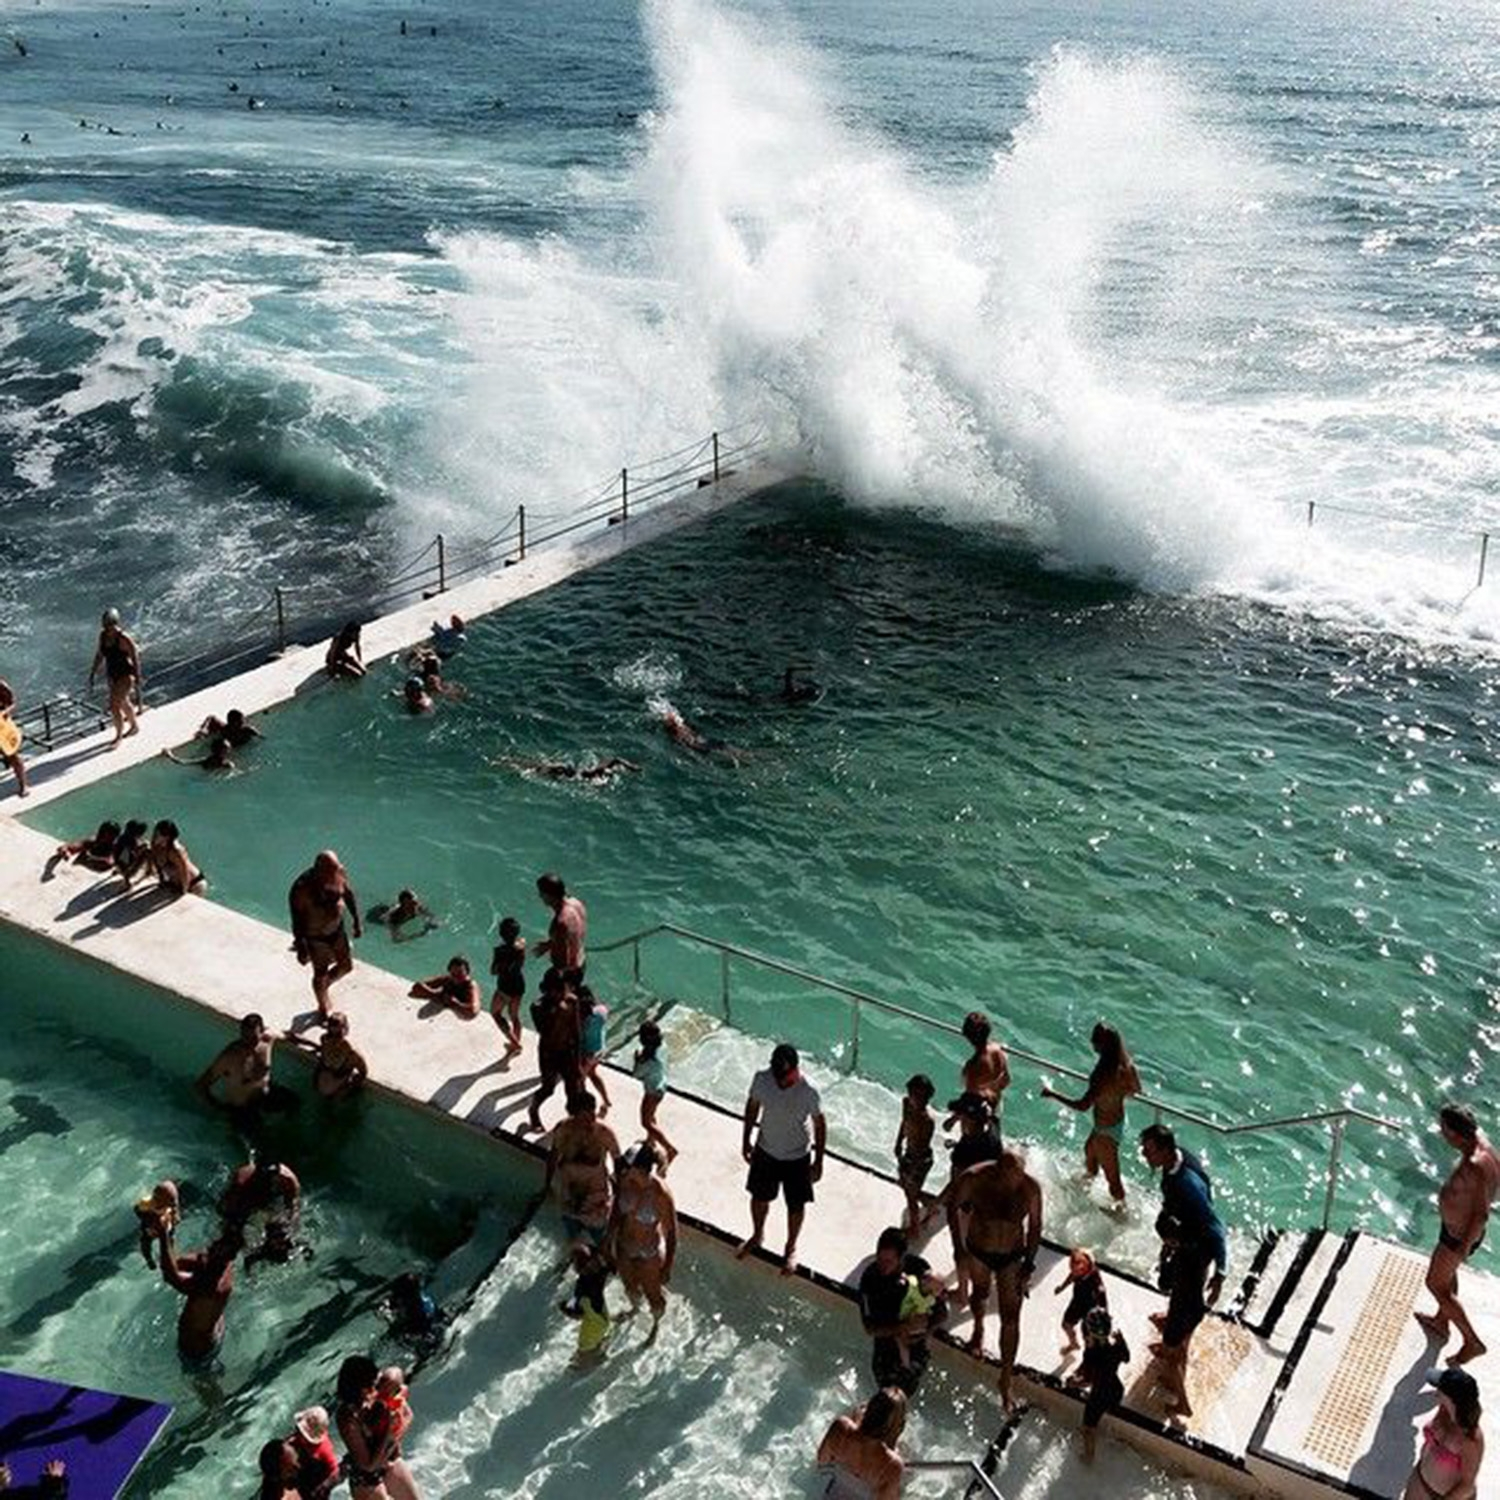 The waves crash against the Bondi Icebergs as people line the pools